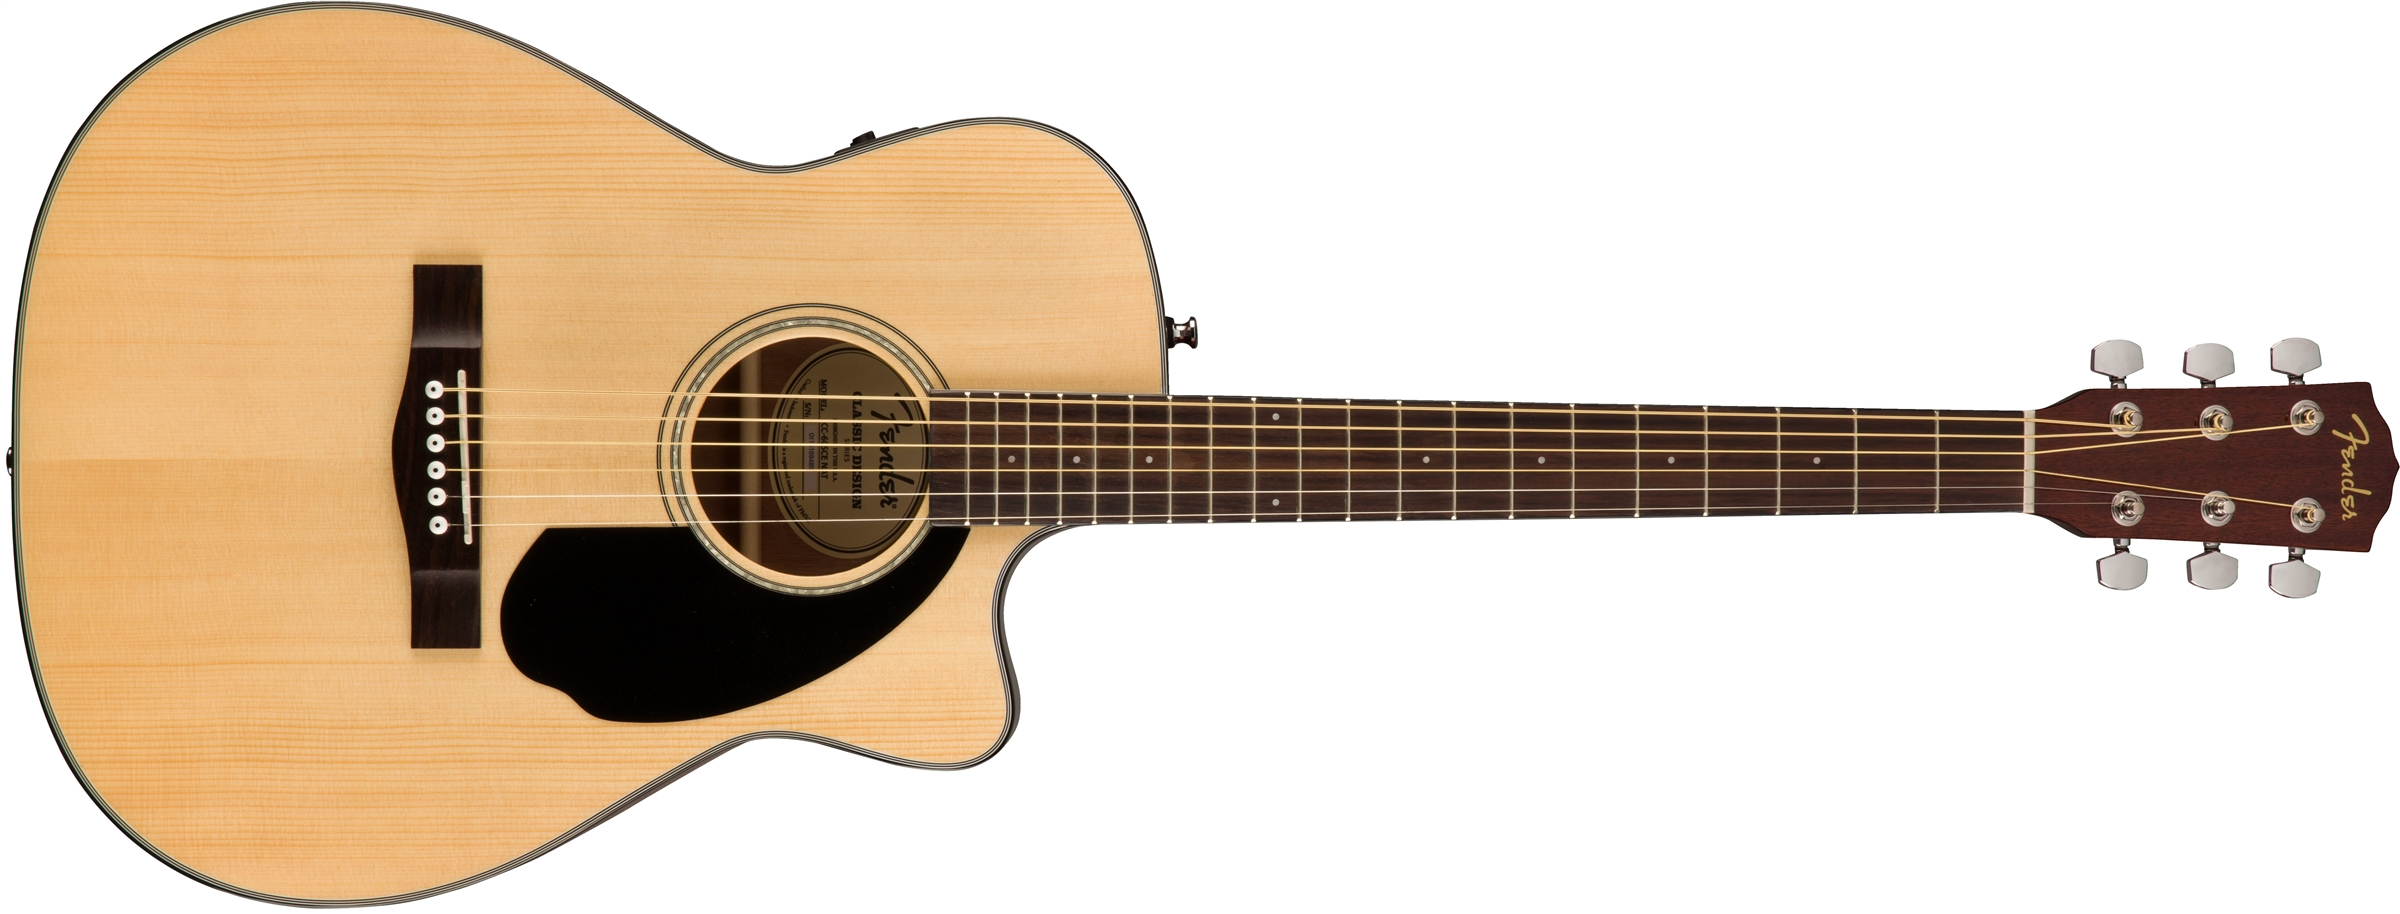 Fender Cc 60sce Natural